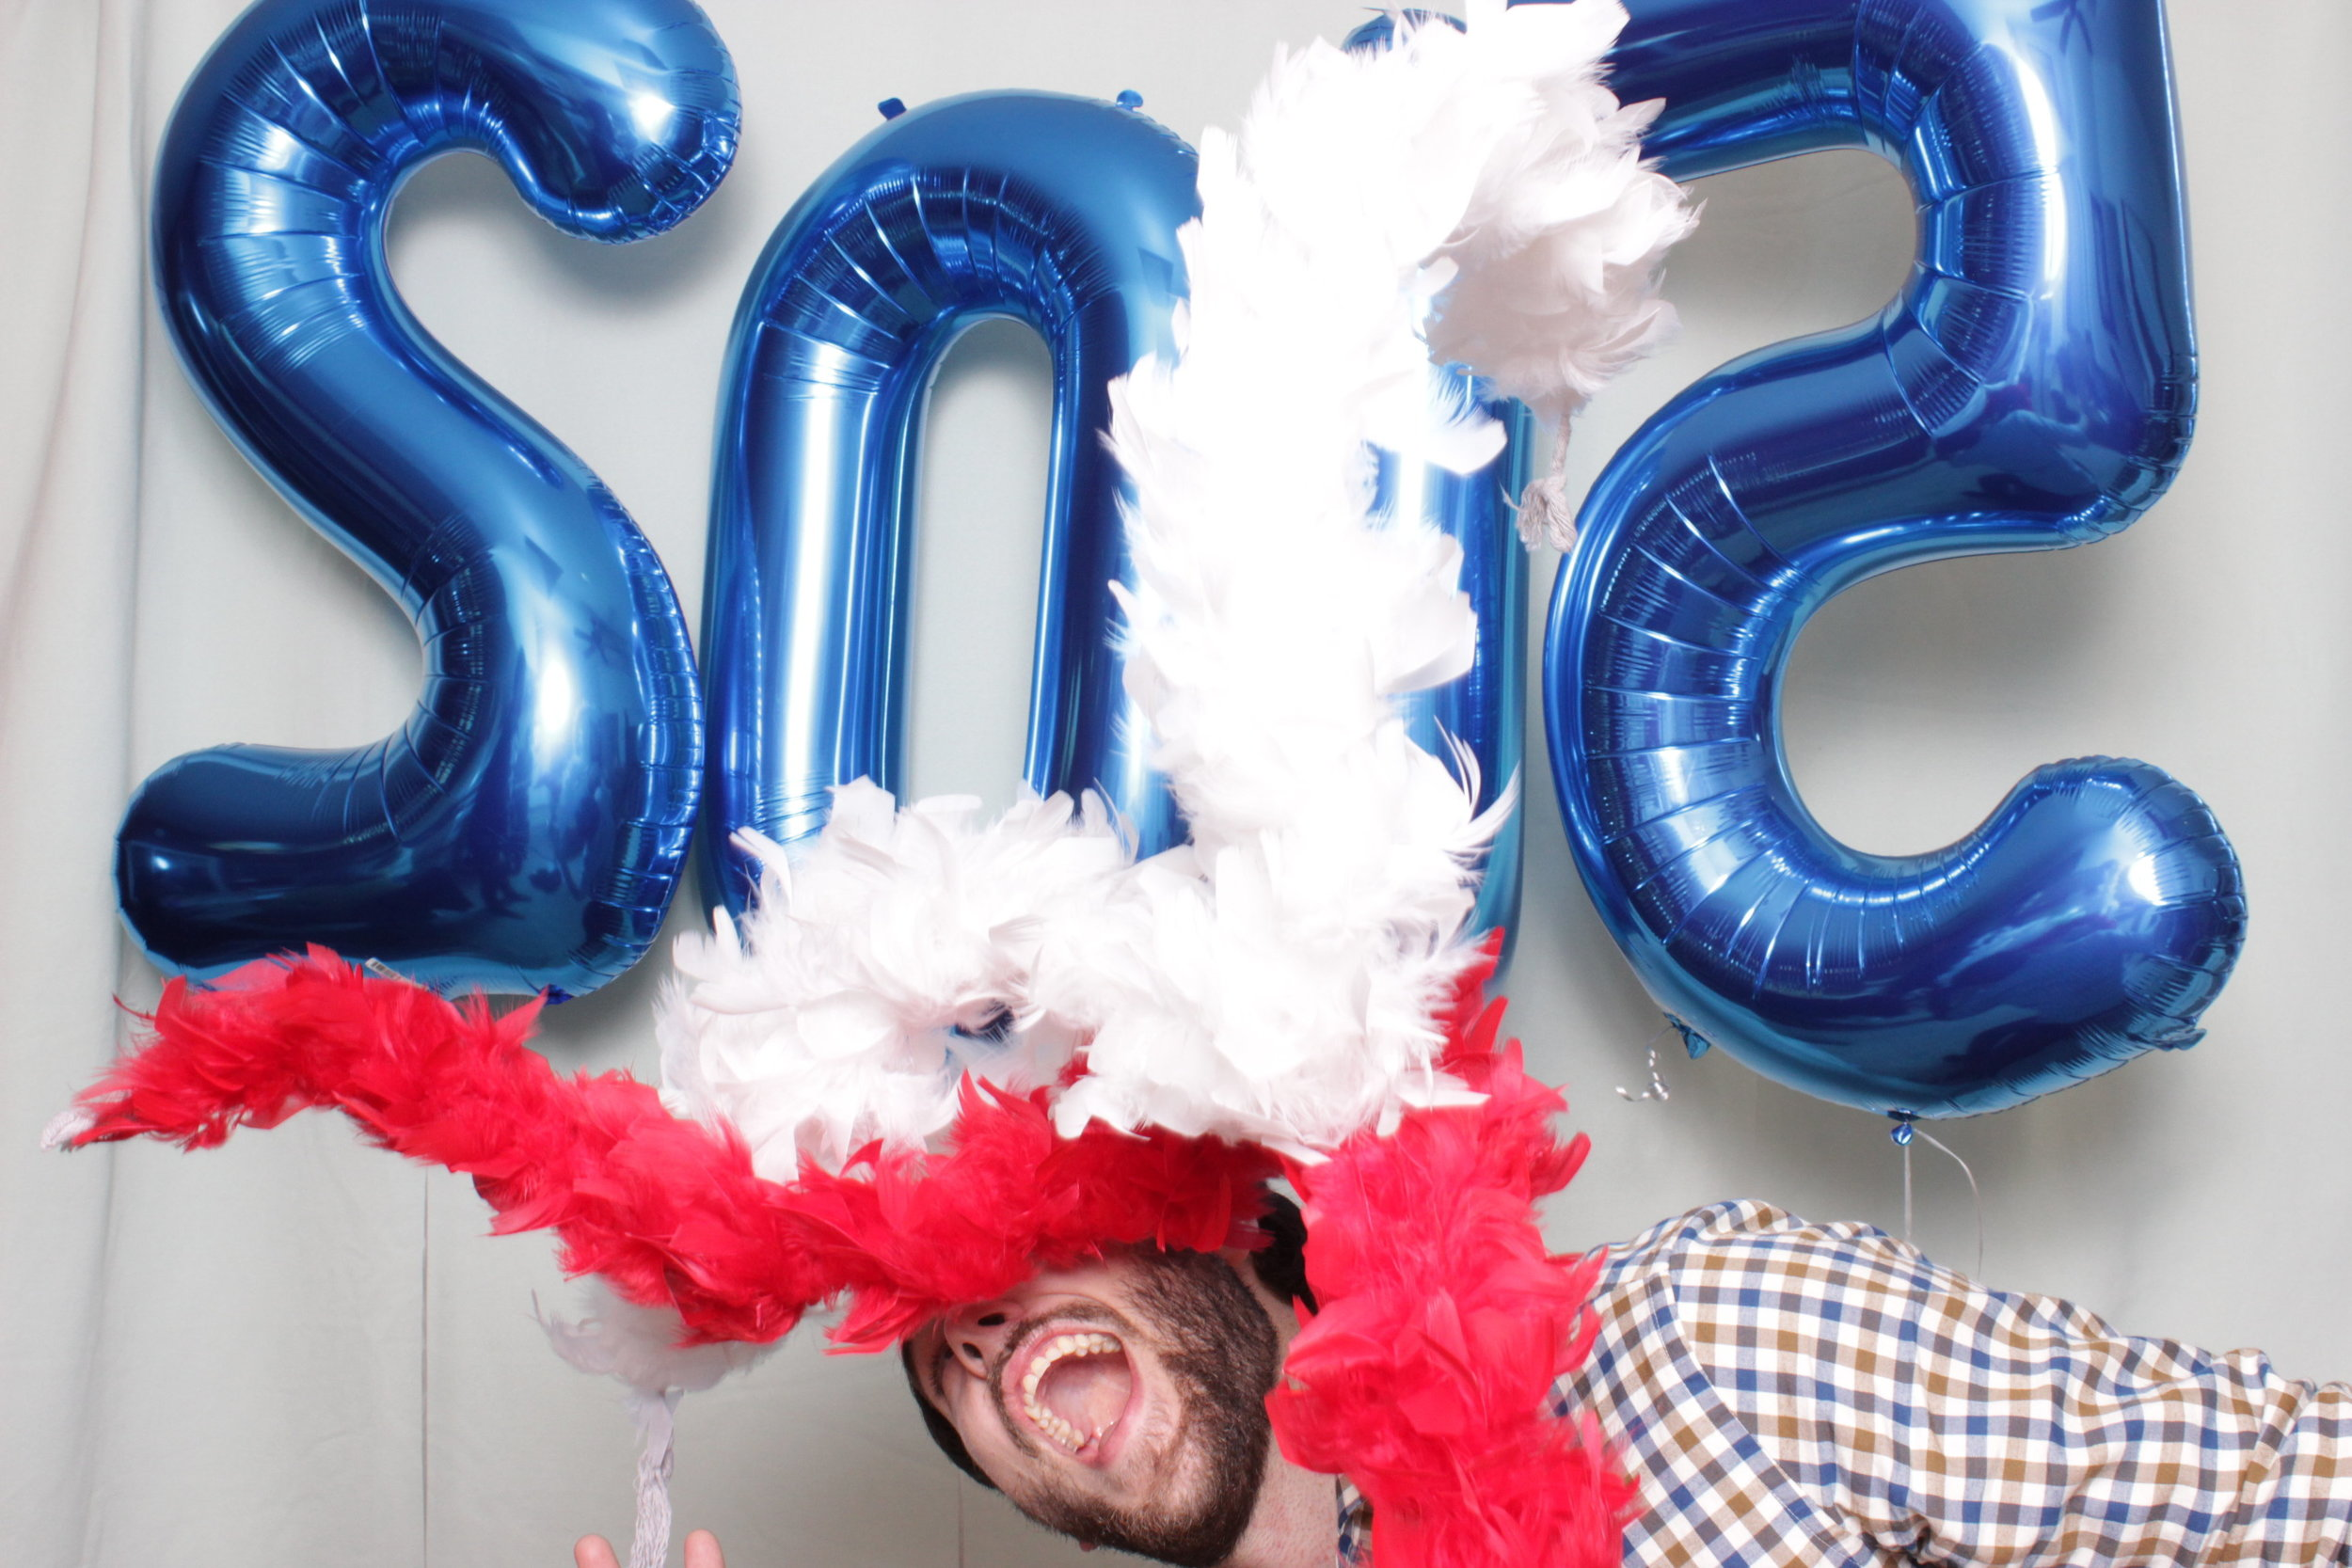 photo-booth-rental-in-chico-california-new-years-party